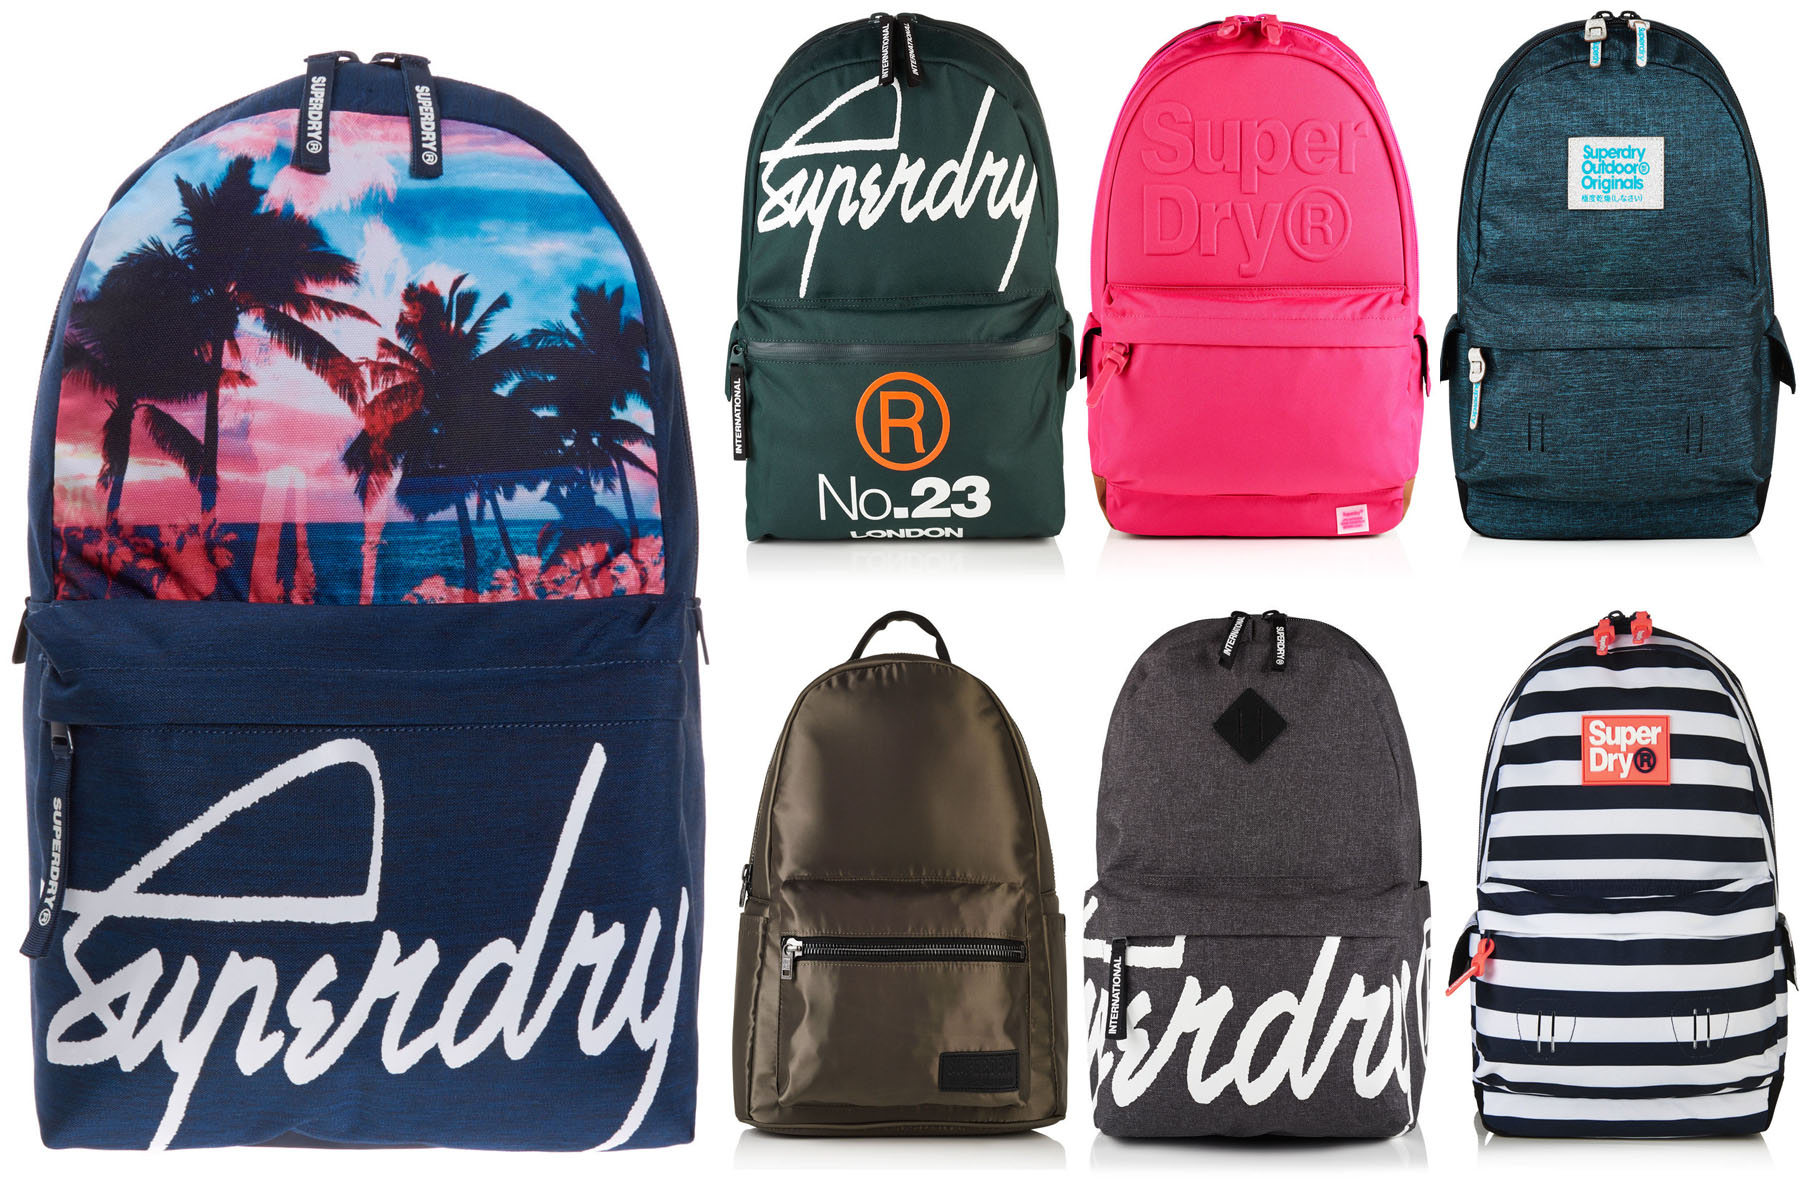 Sentinel New Superdry Bags Selection Various Styles Colours 0307